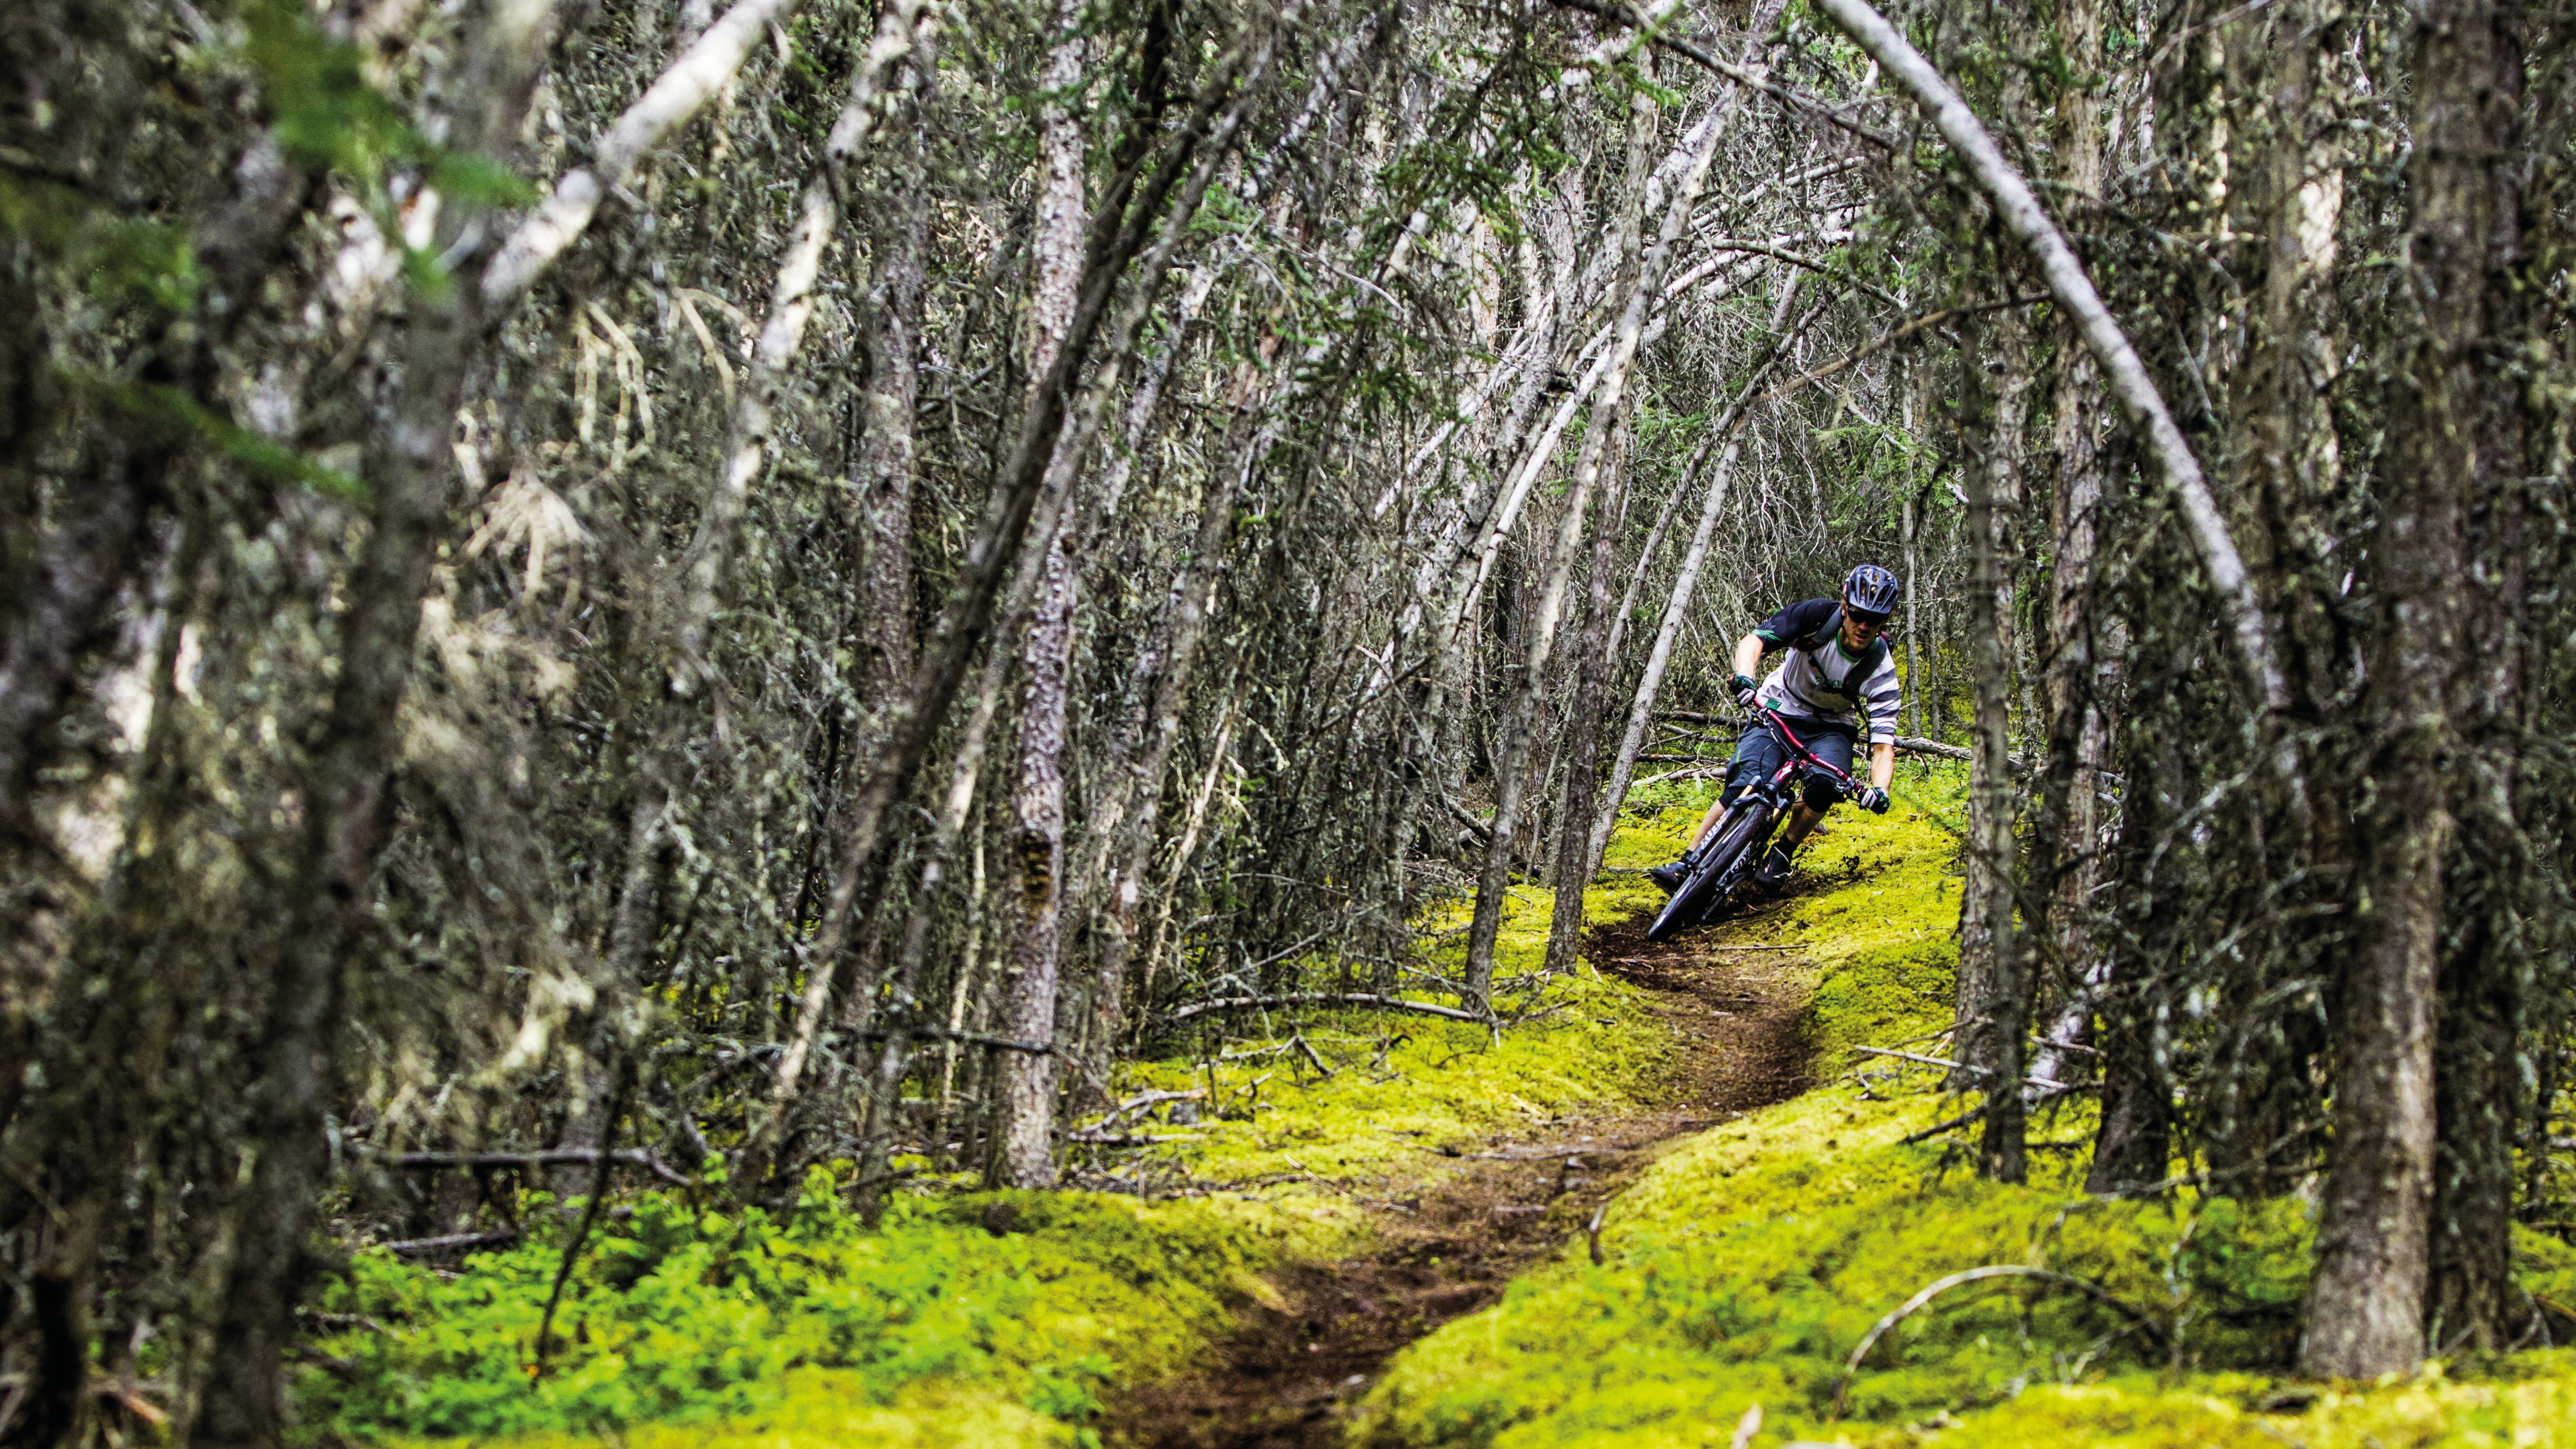 Ride the Whitehorse trails in the Yukon Territory